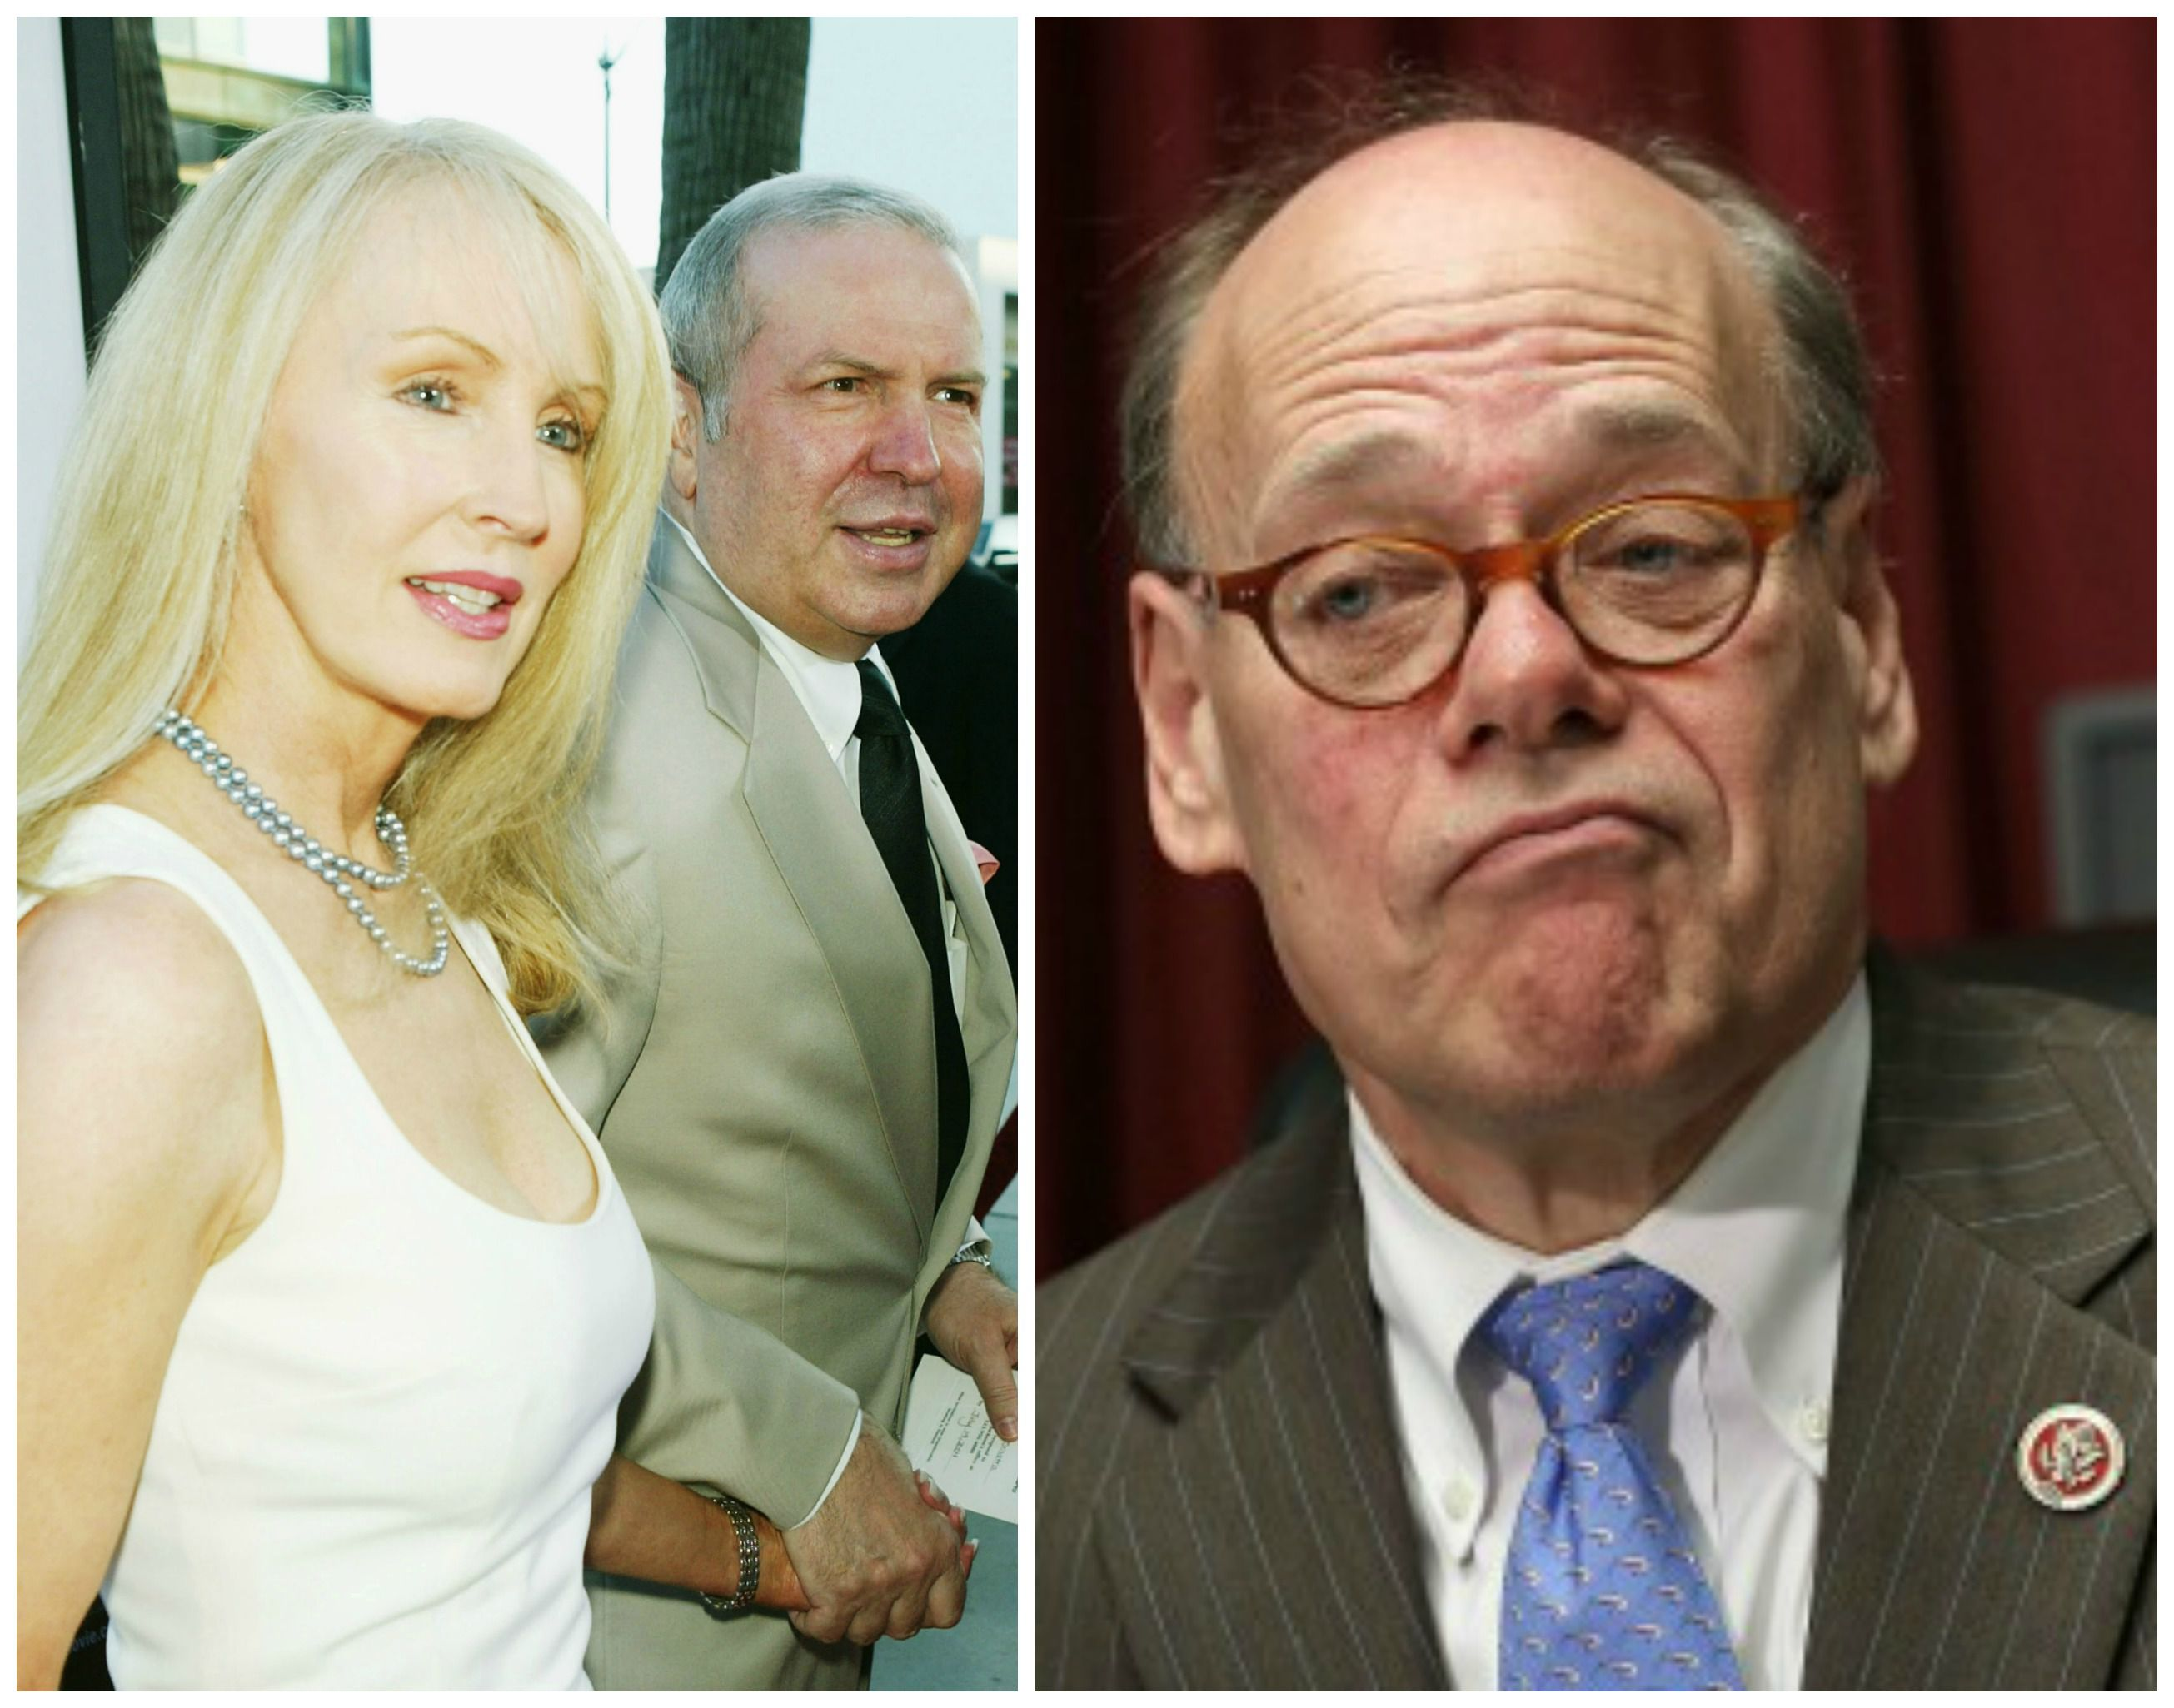 Right: Rep. Steve Cohen. Left: Ex-Cohen lover Cynthia Sinatra with ex-husband Frank Sinatra Jr.